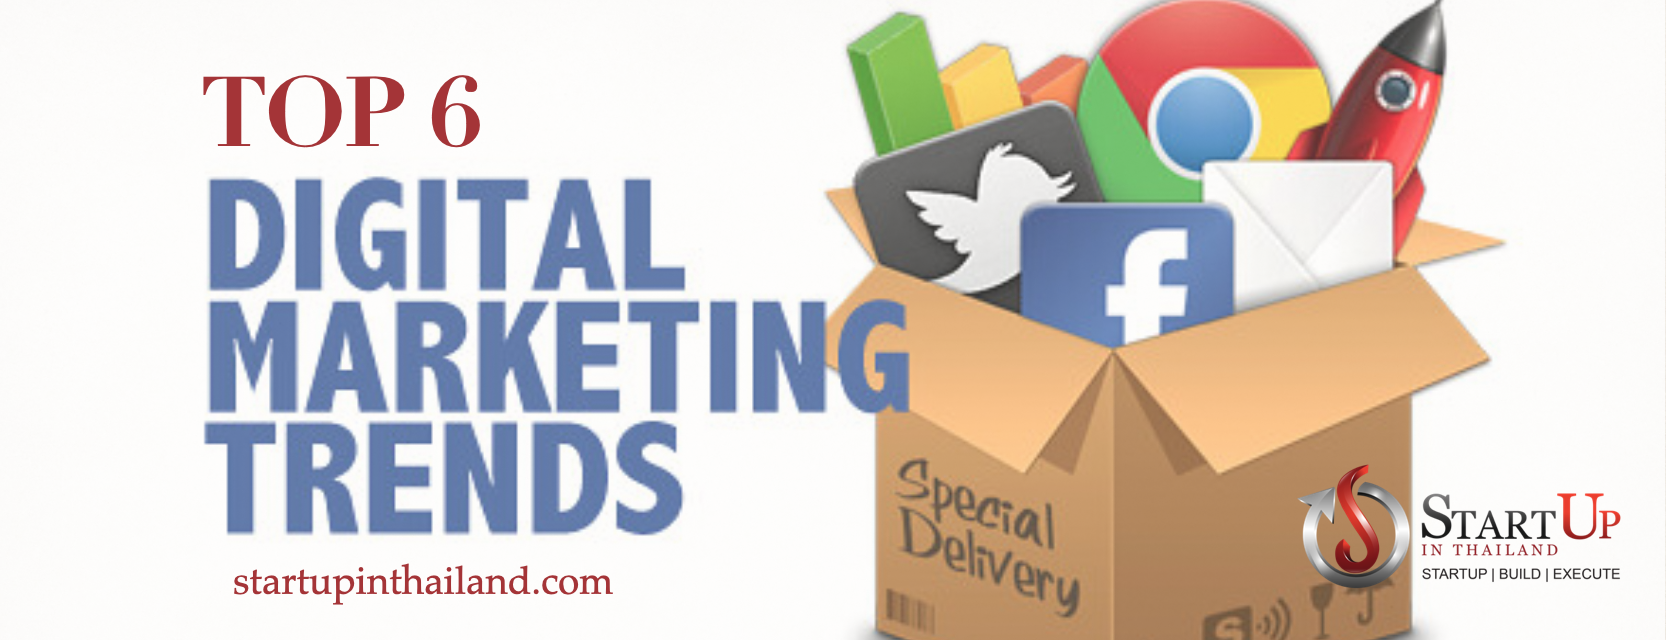 Social Media icons, a rocket and graph in a box